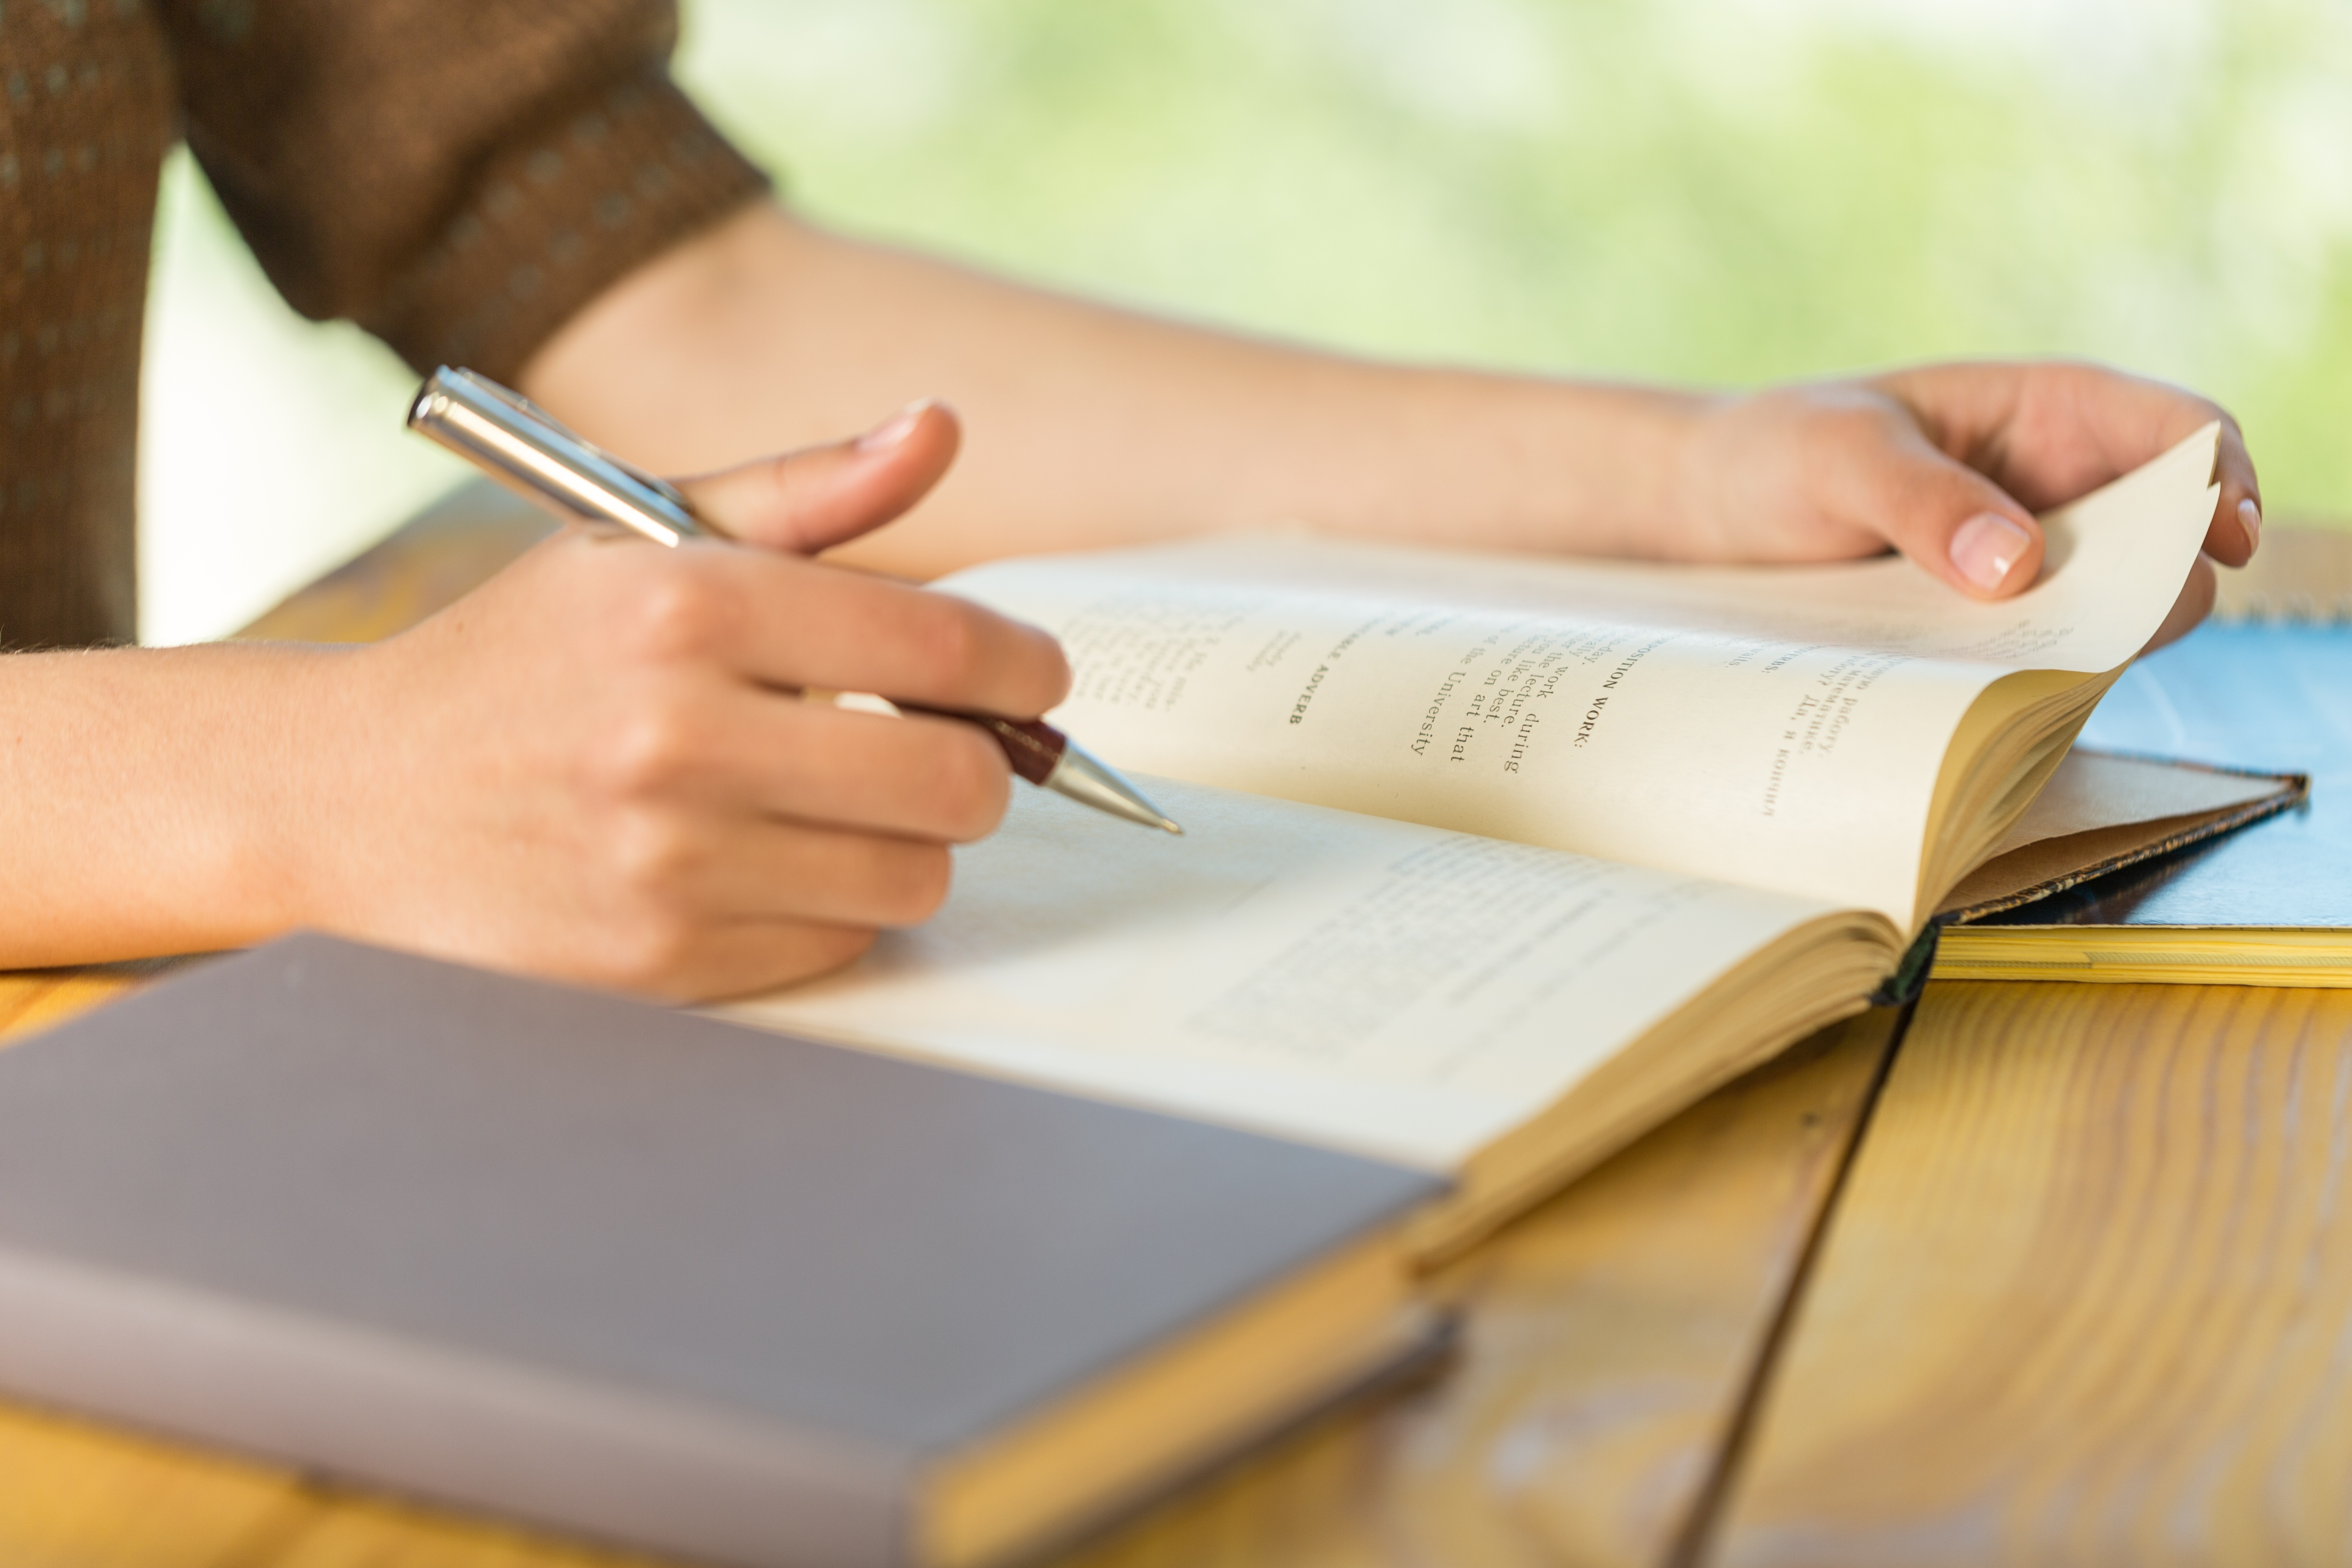 Writing Your Own Story